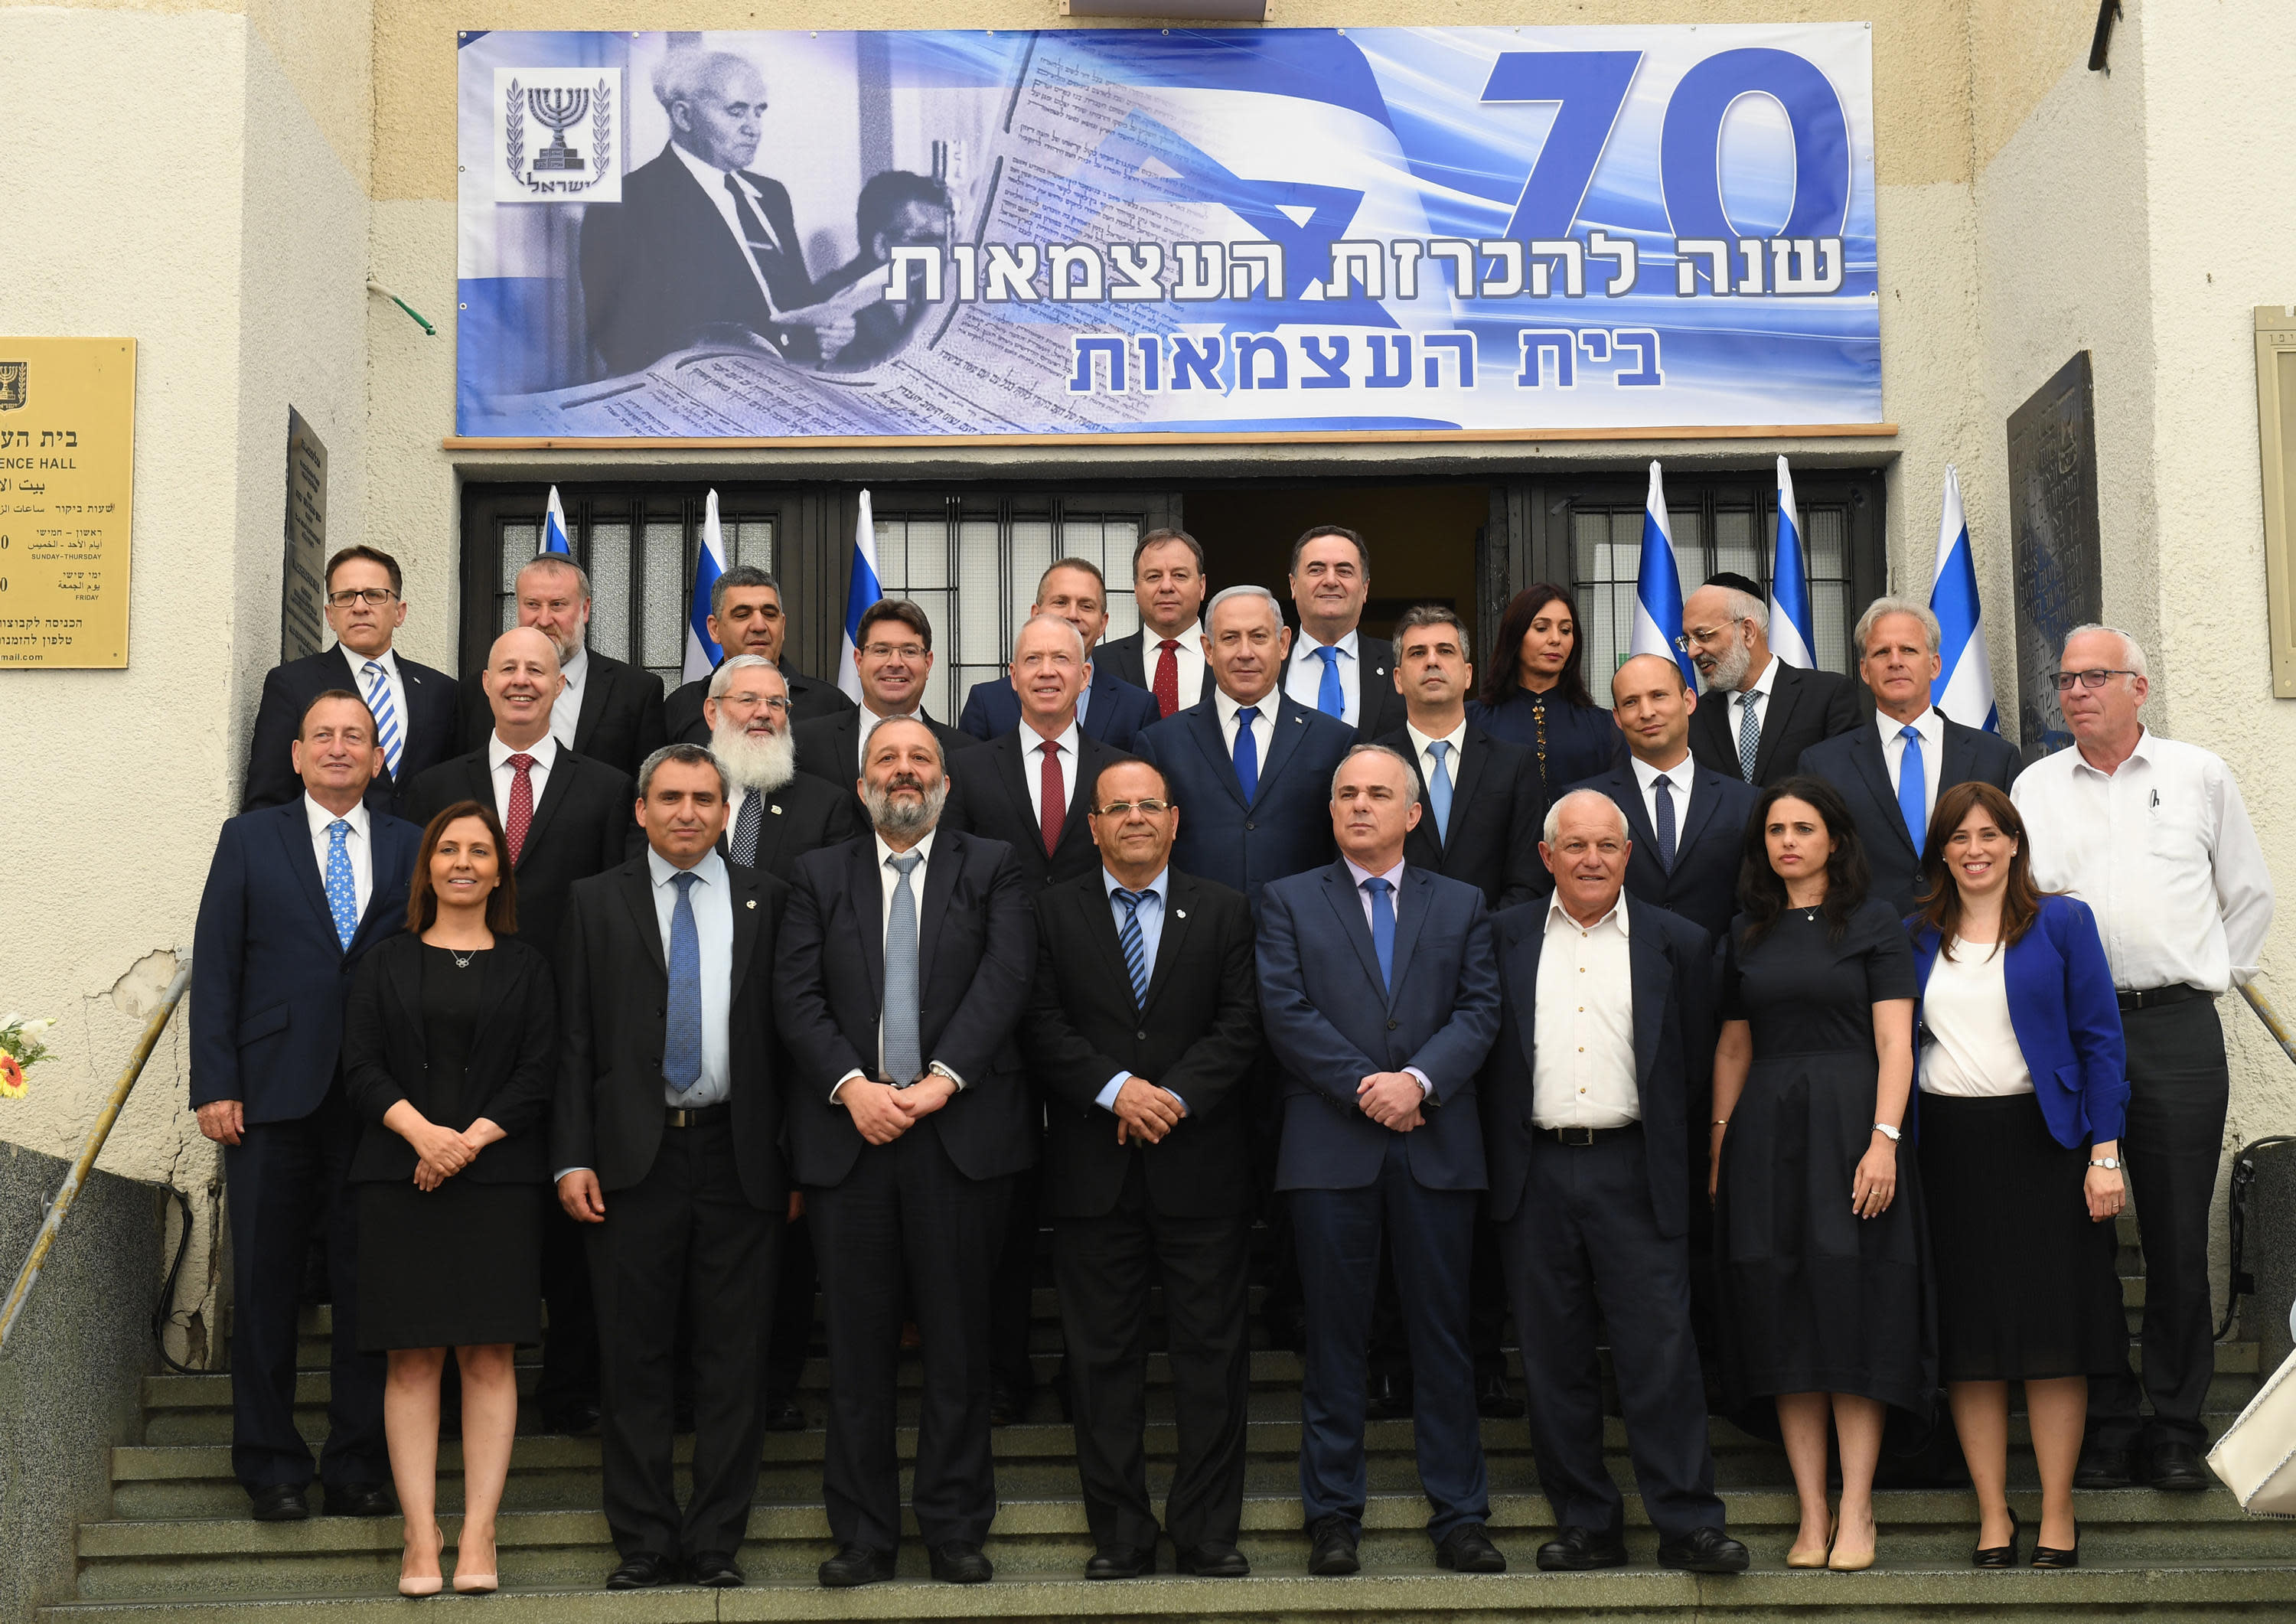 Special cabinet meeting at independence hall in Tel Aviv in honor of Israel's 70th Independence Day, April 2018 (GPO)